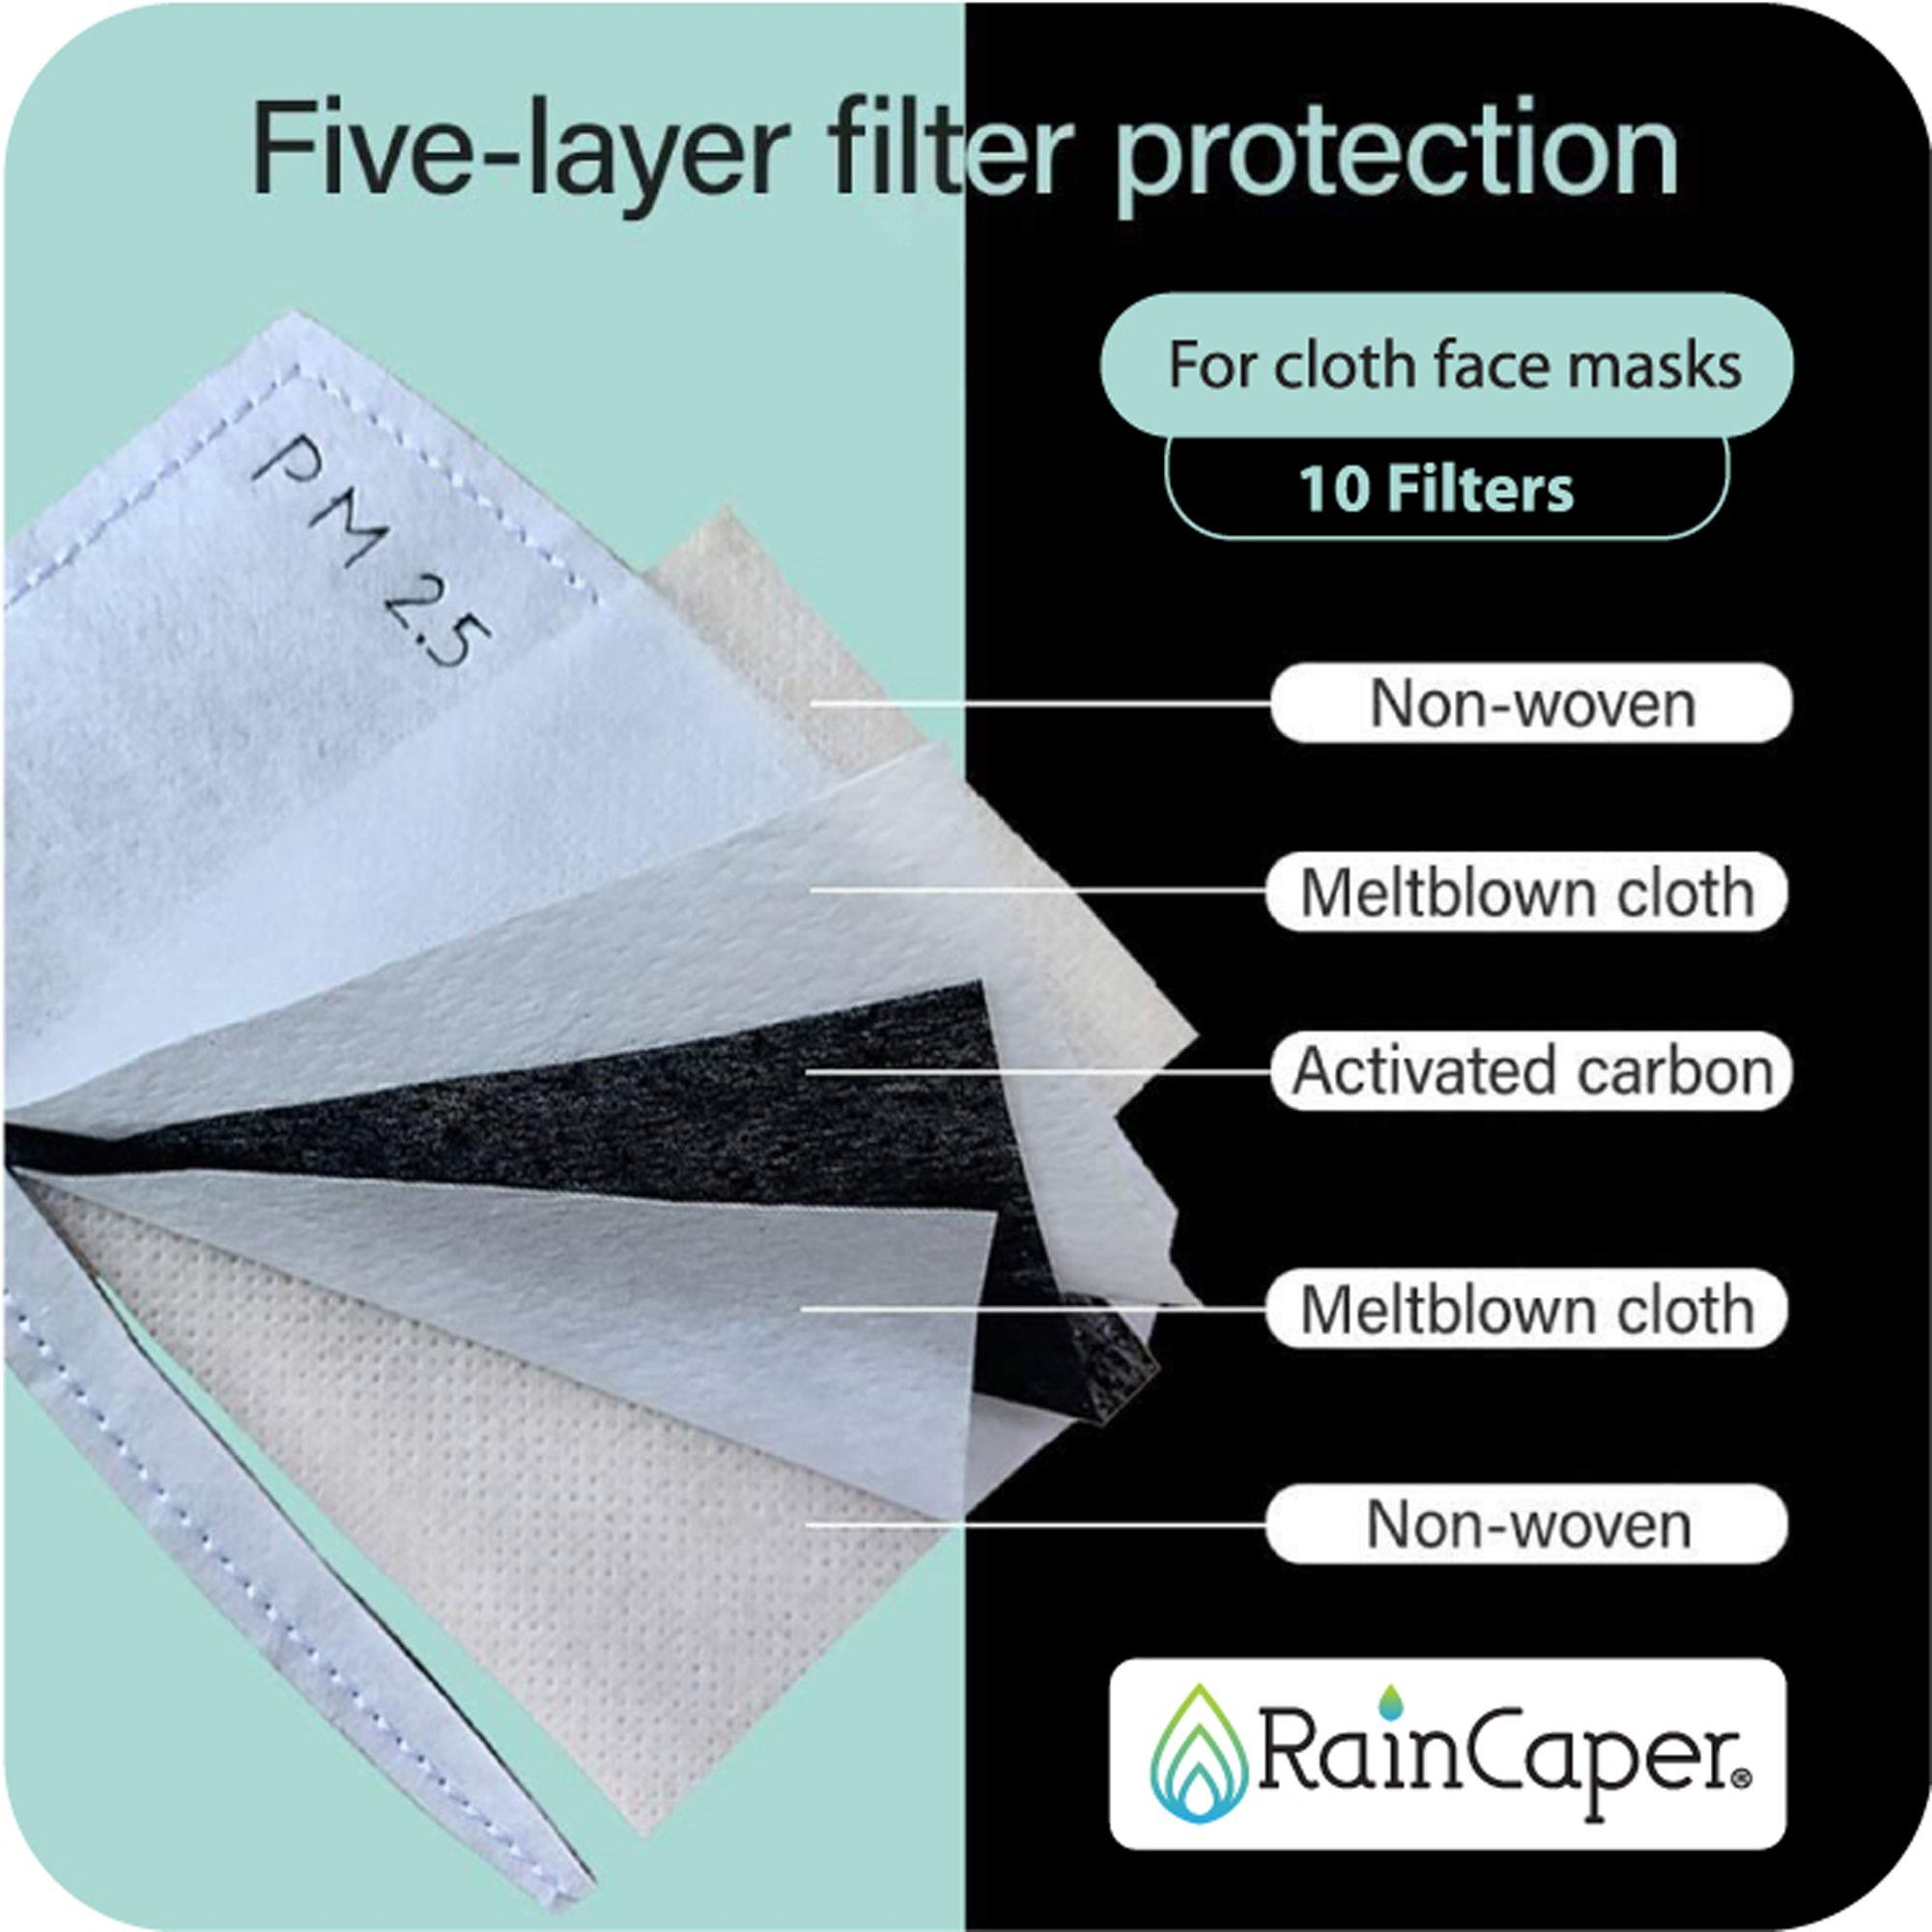 Picture of 10 PM2.5 disposable filter inserts designed to fit in RainCaper reusable fabric face masks